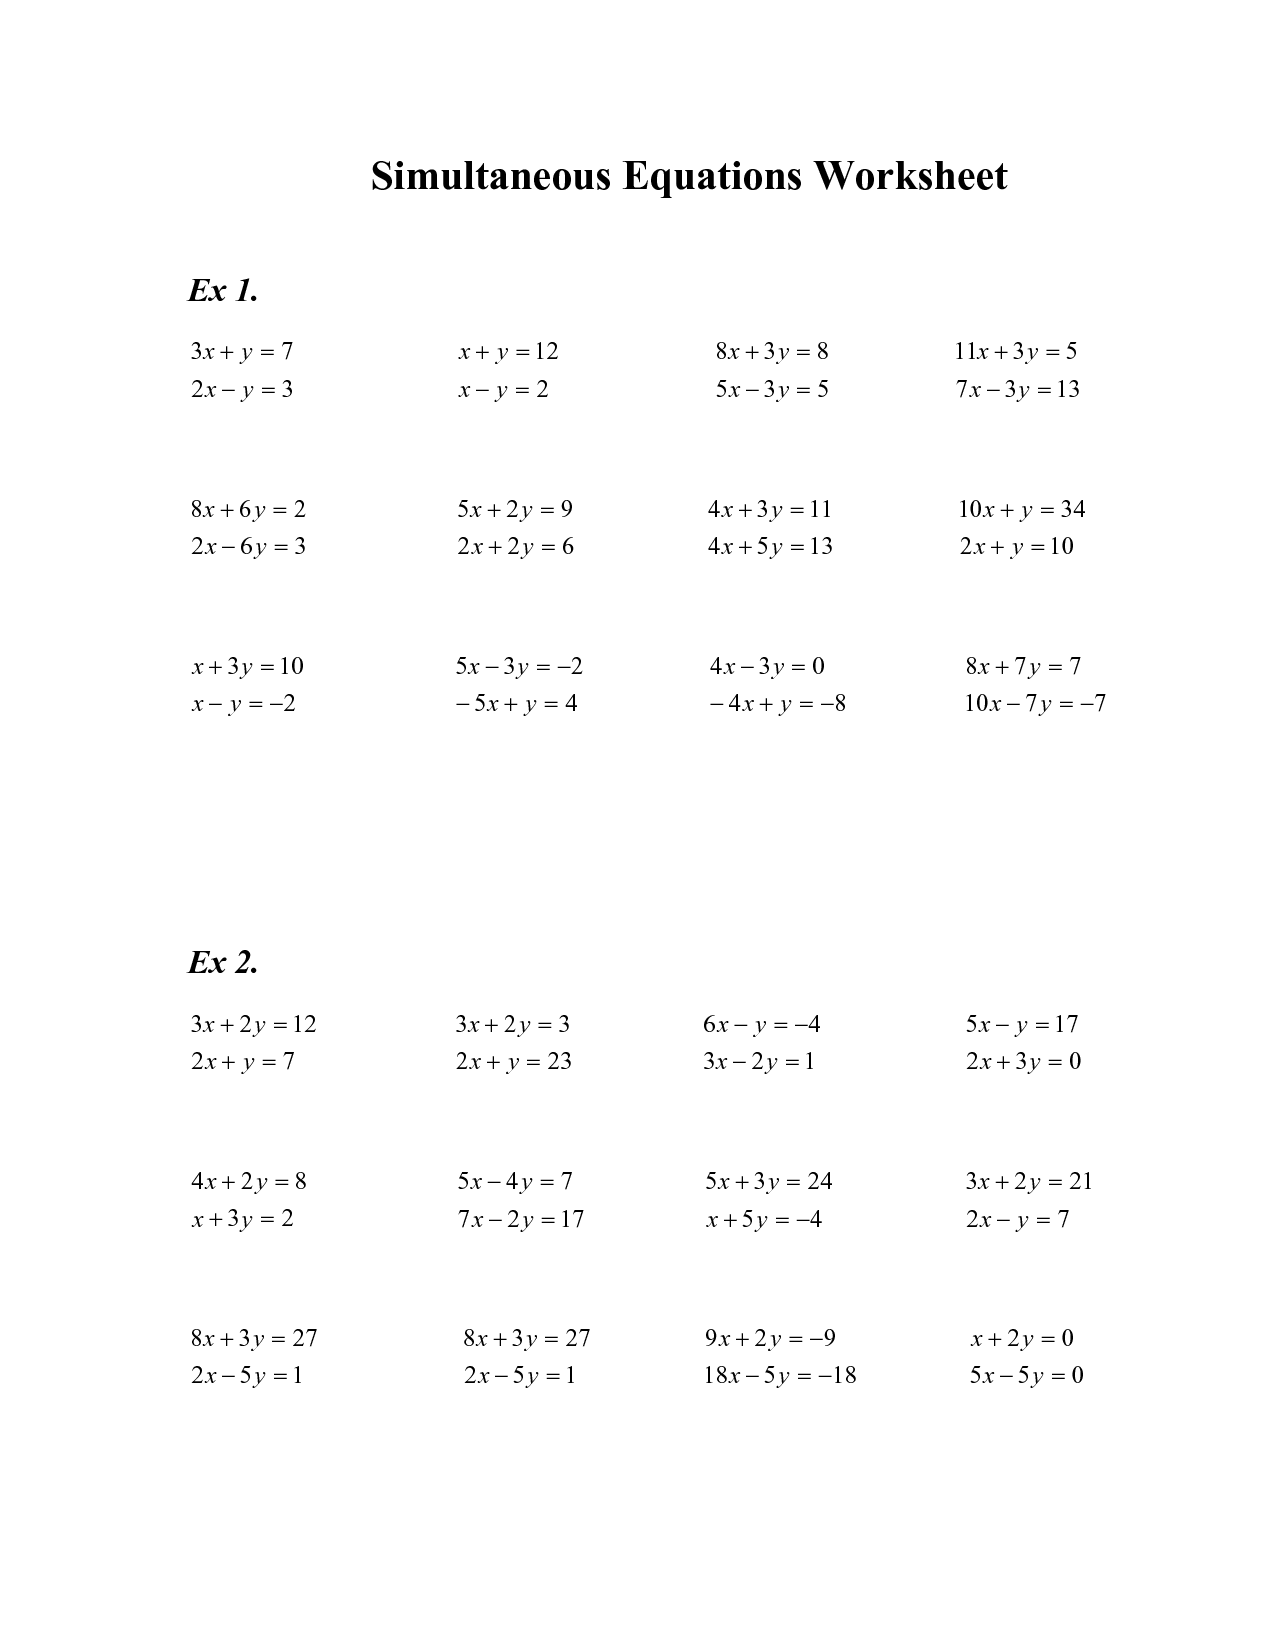 Simultaneous Linear Equations Worksheet 8th Grade